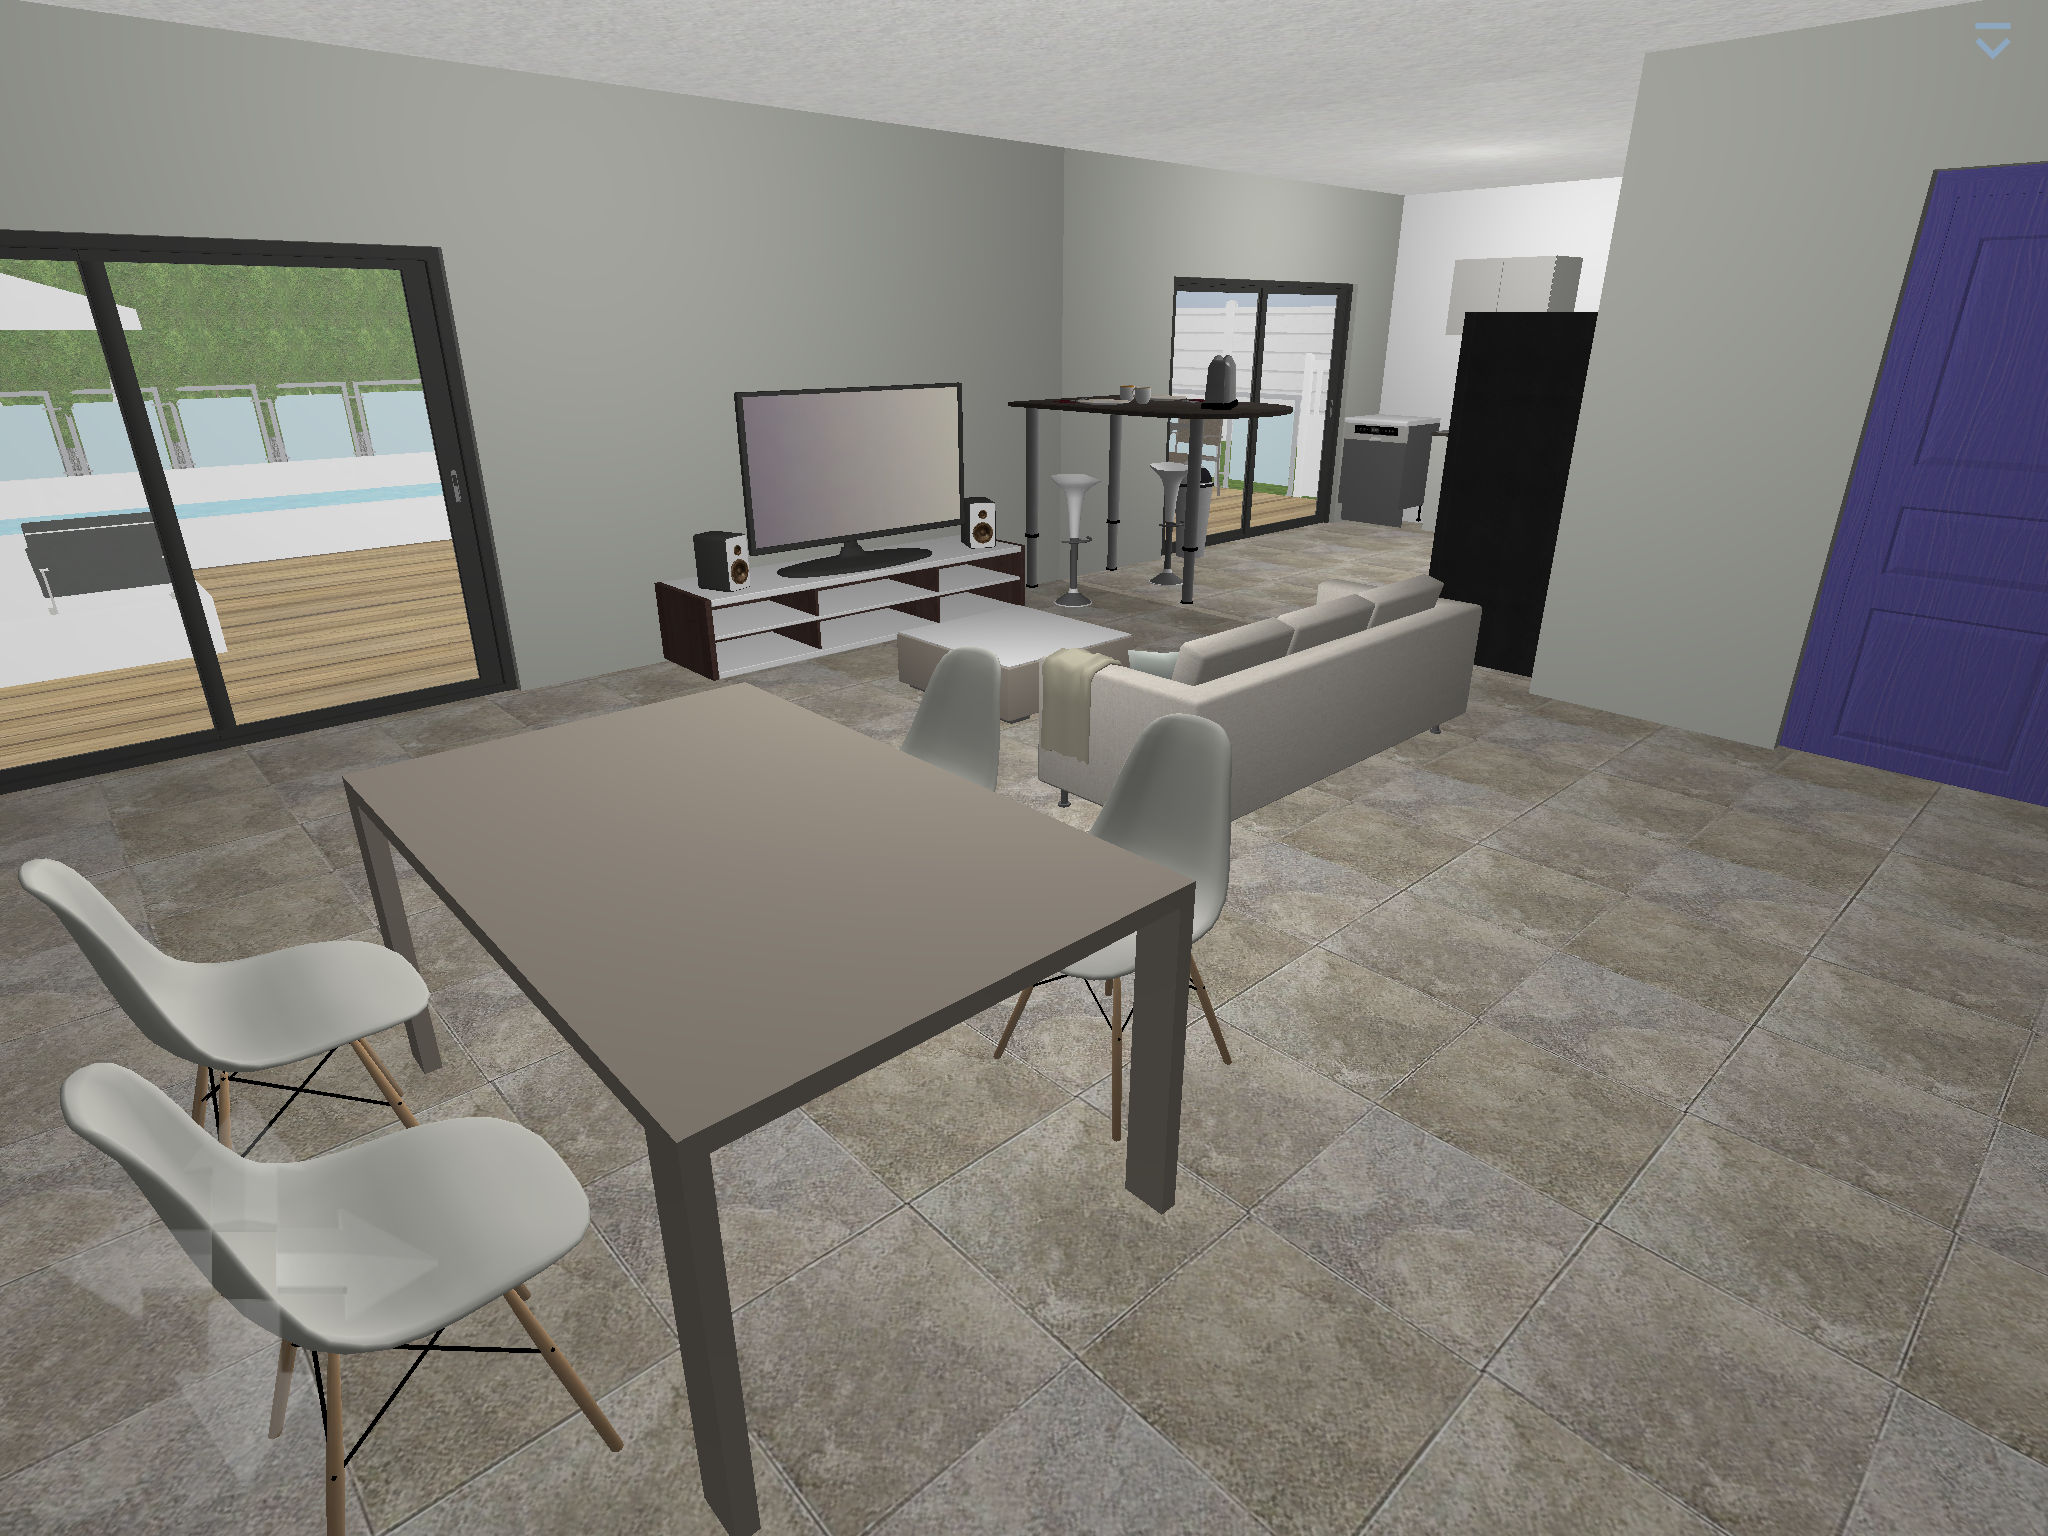 Plan 3d salon salle manger logiciel home design 3d gold architecture maison 3d - Plan 3d salon ...